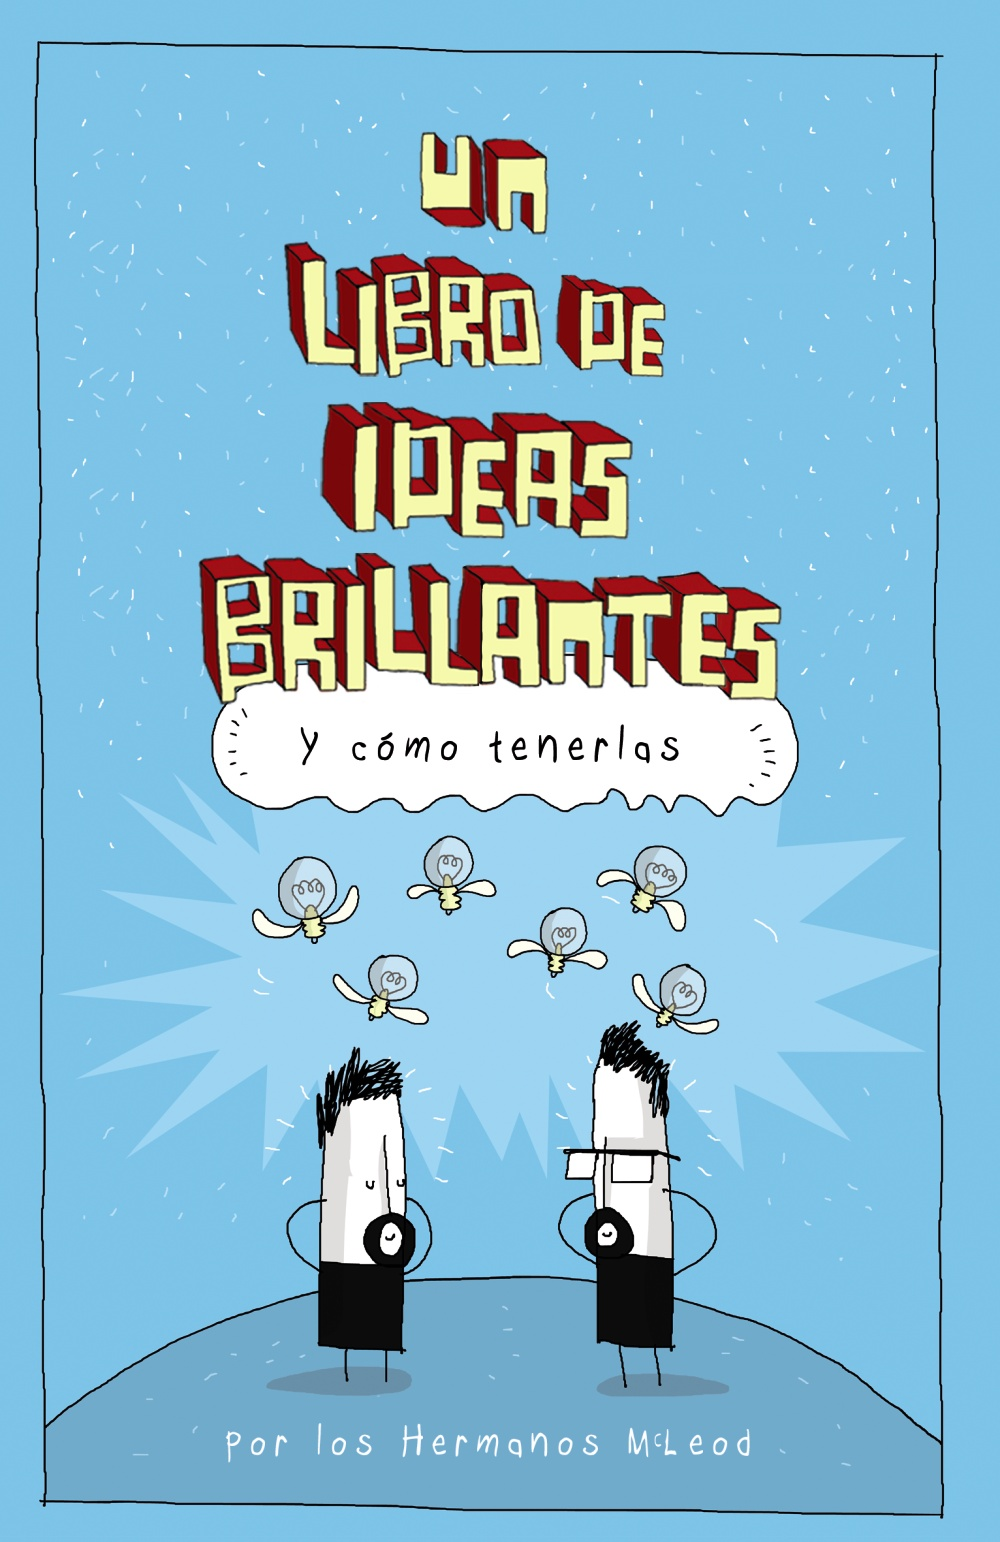 Un libro de ideas brillantes